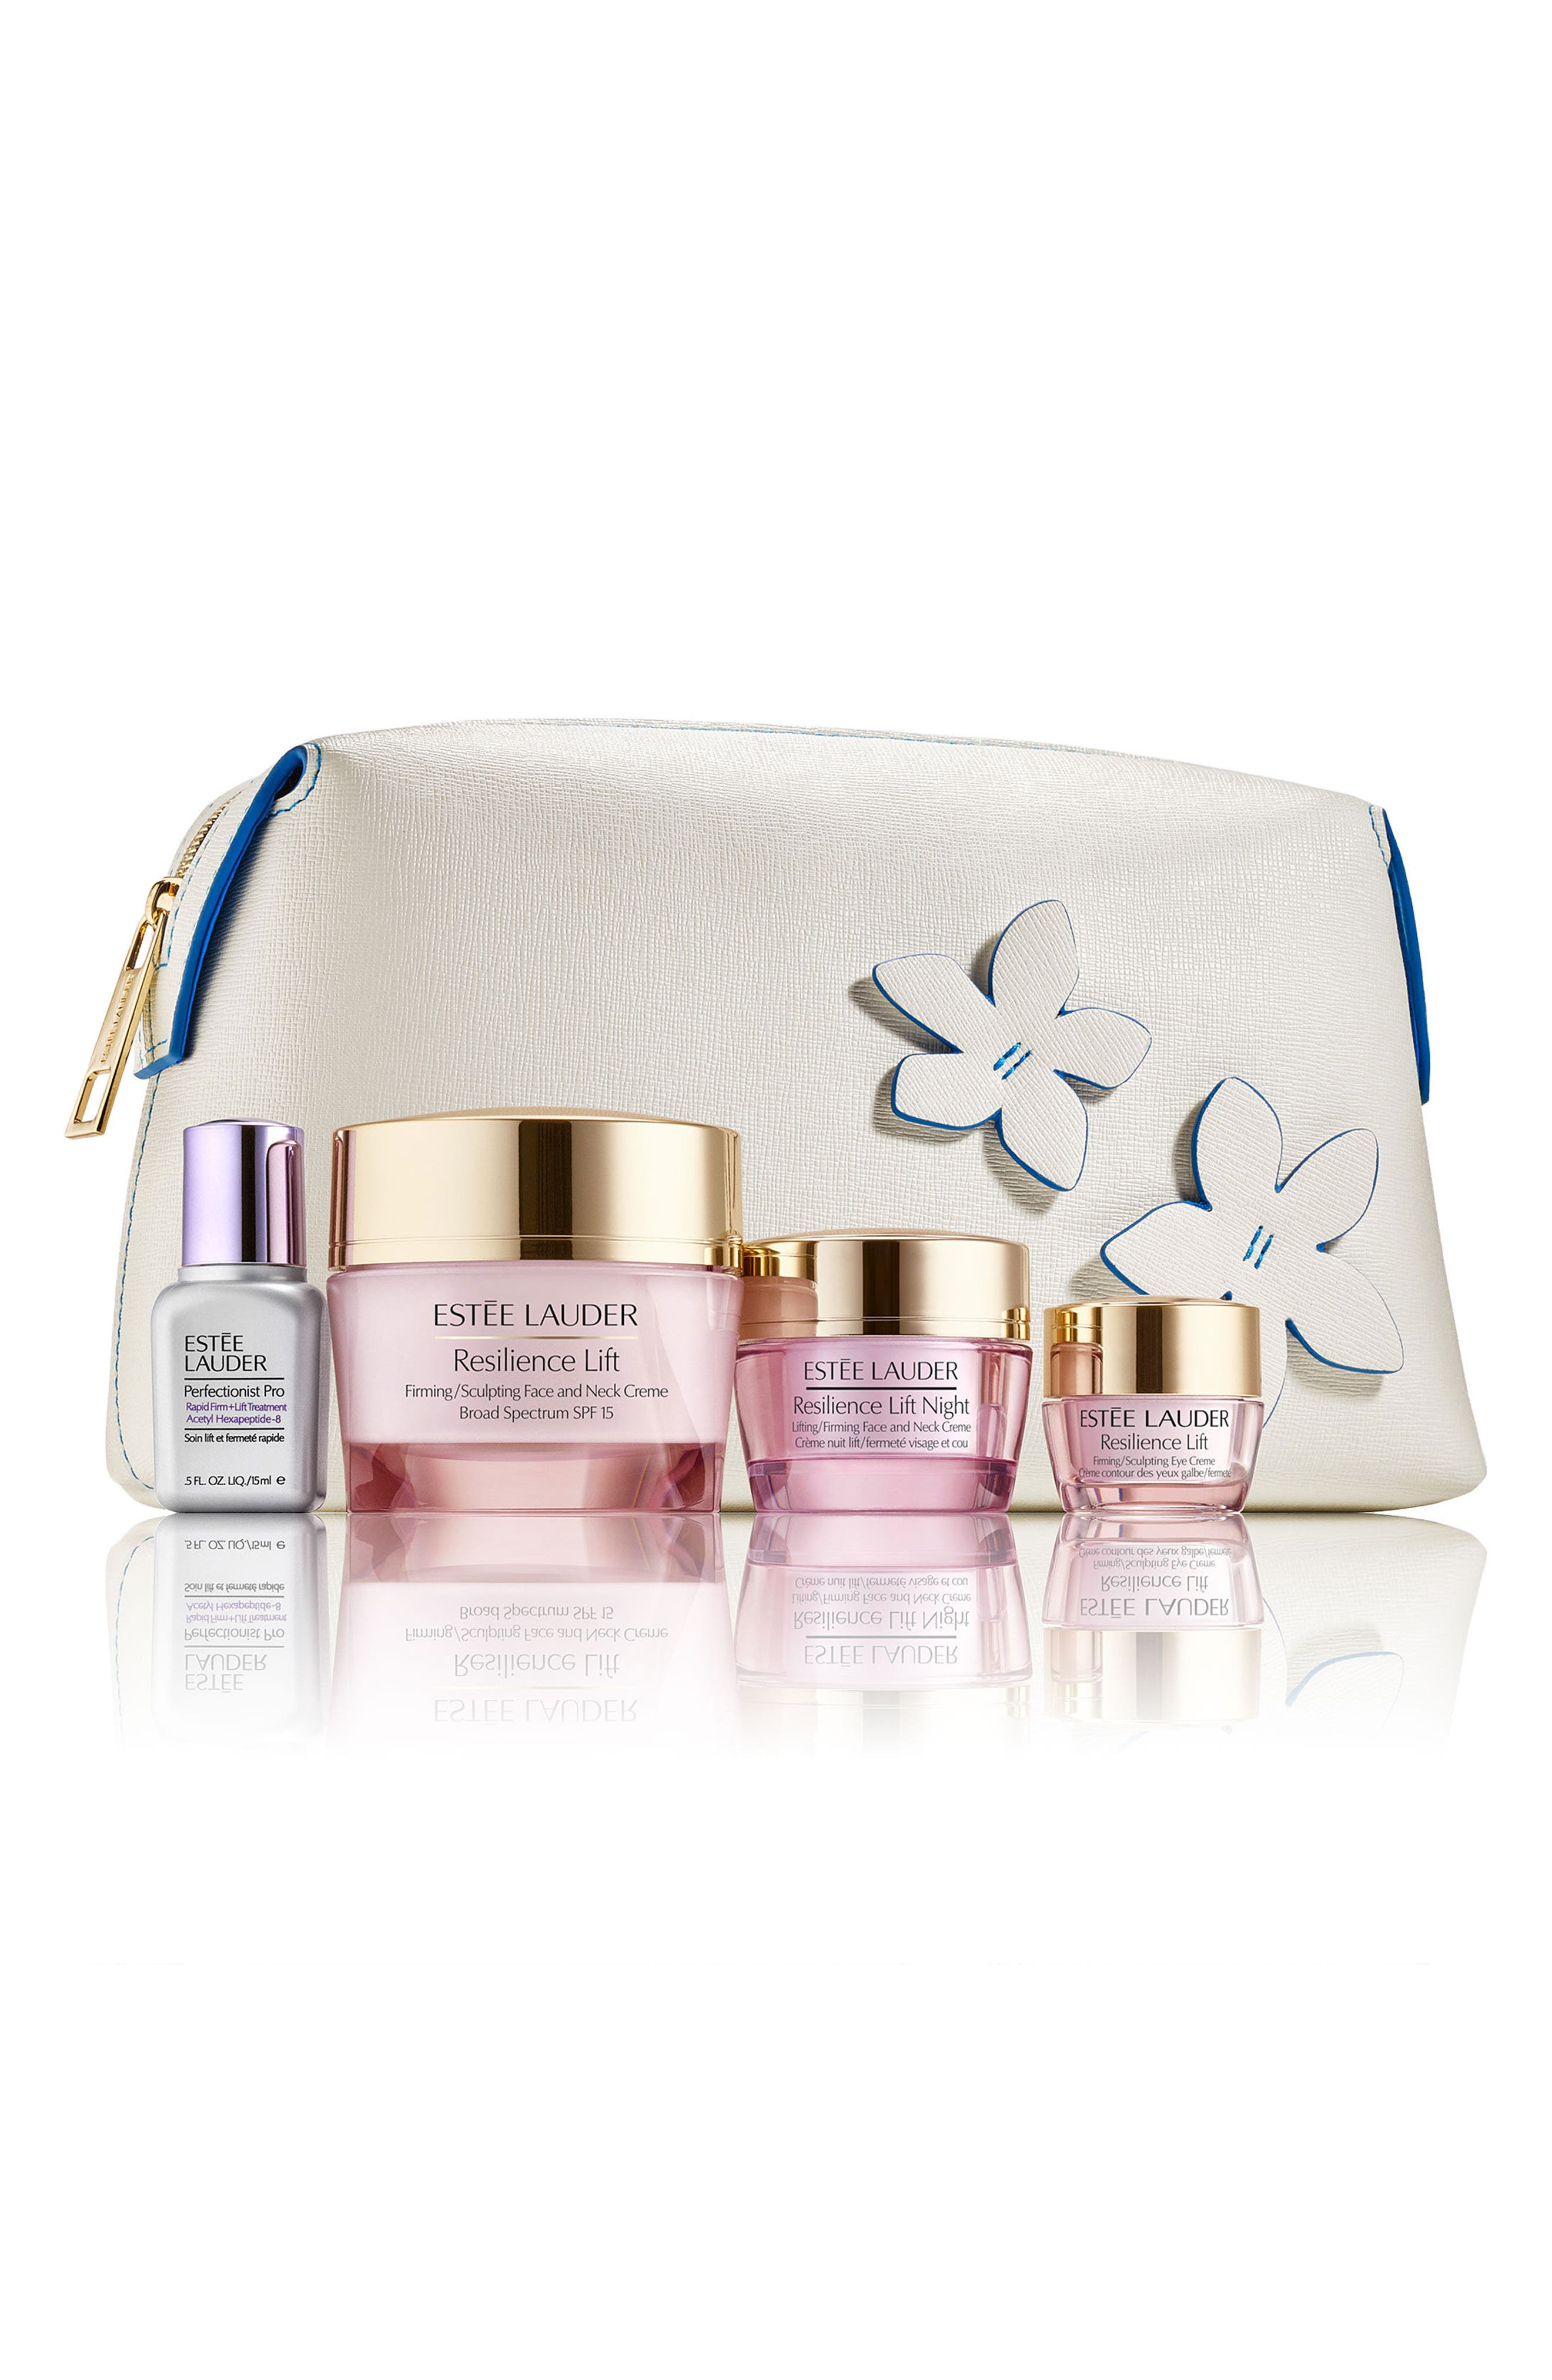 Estée Lauder Firm + Lift Set ($190 Value)